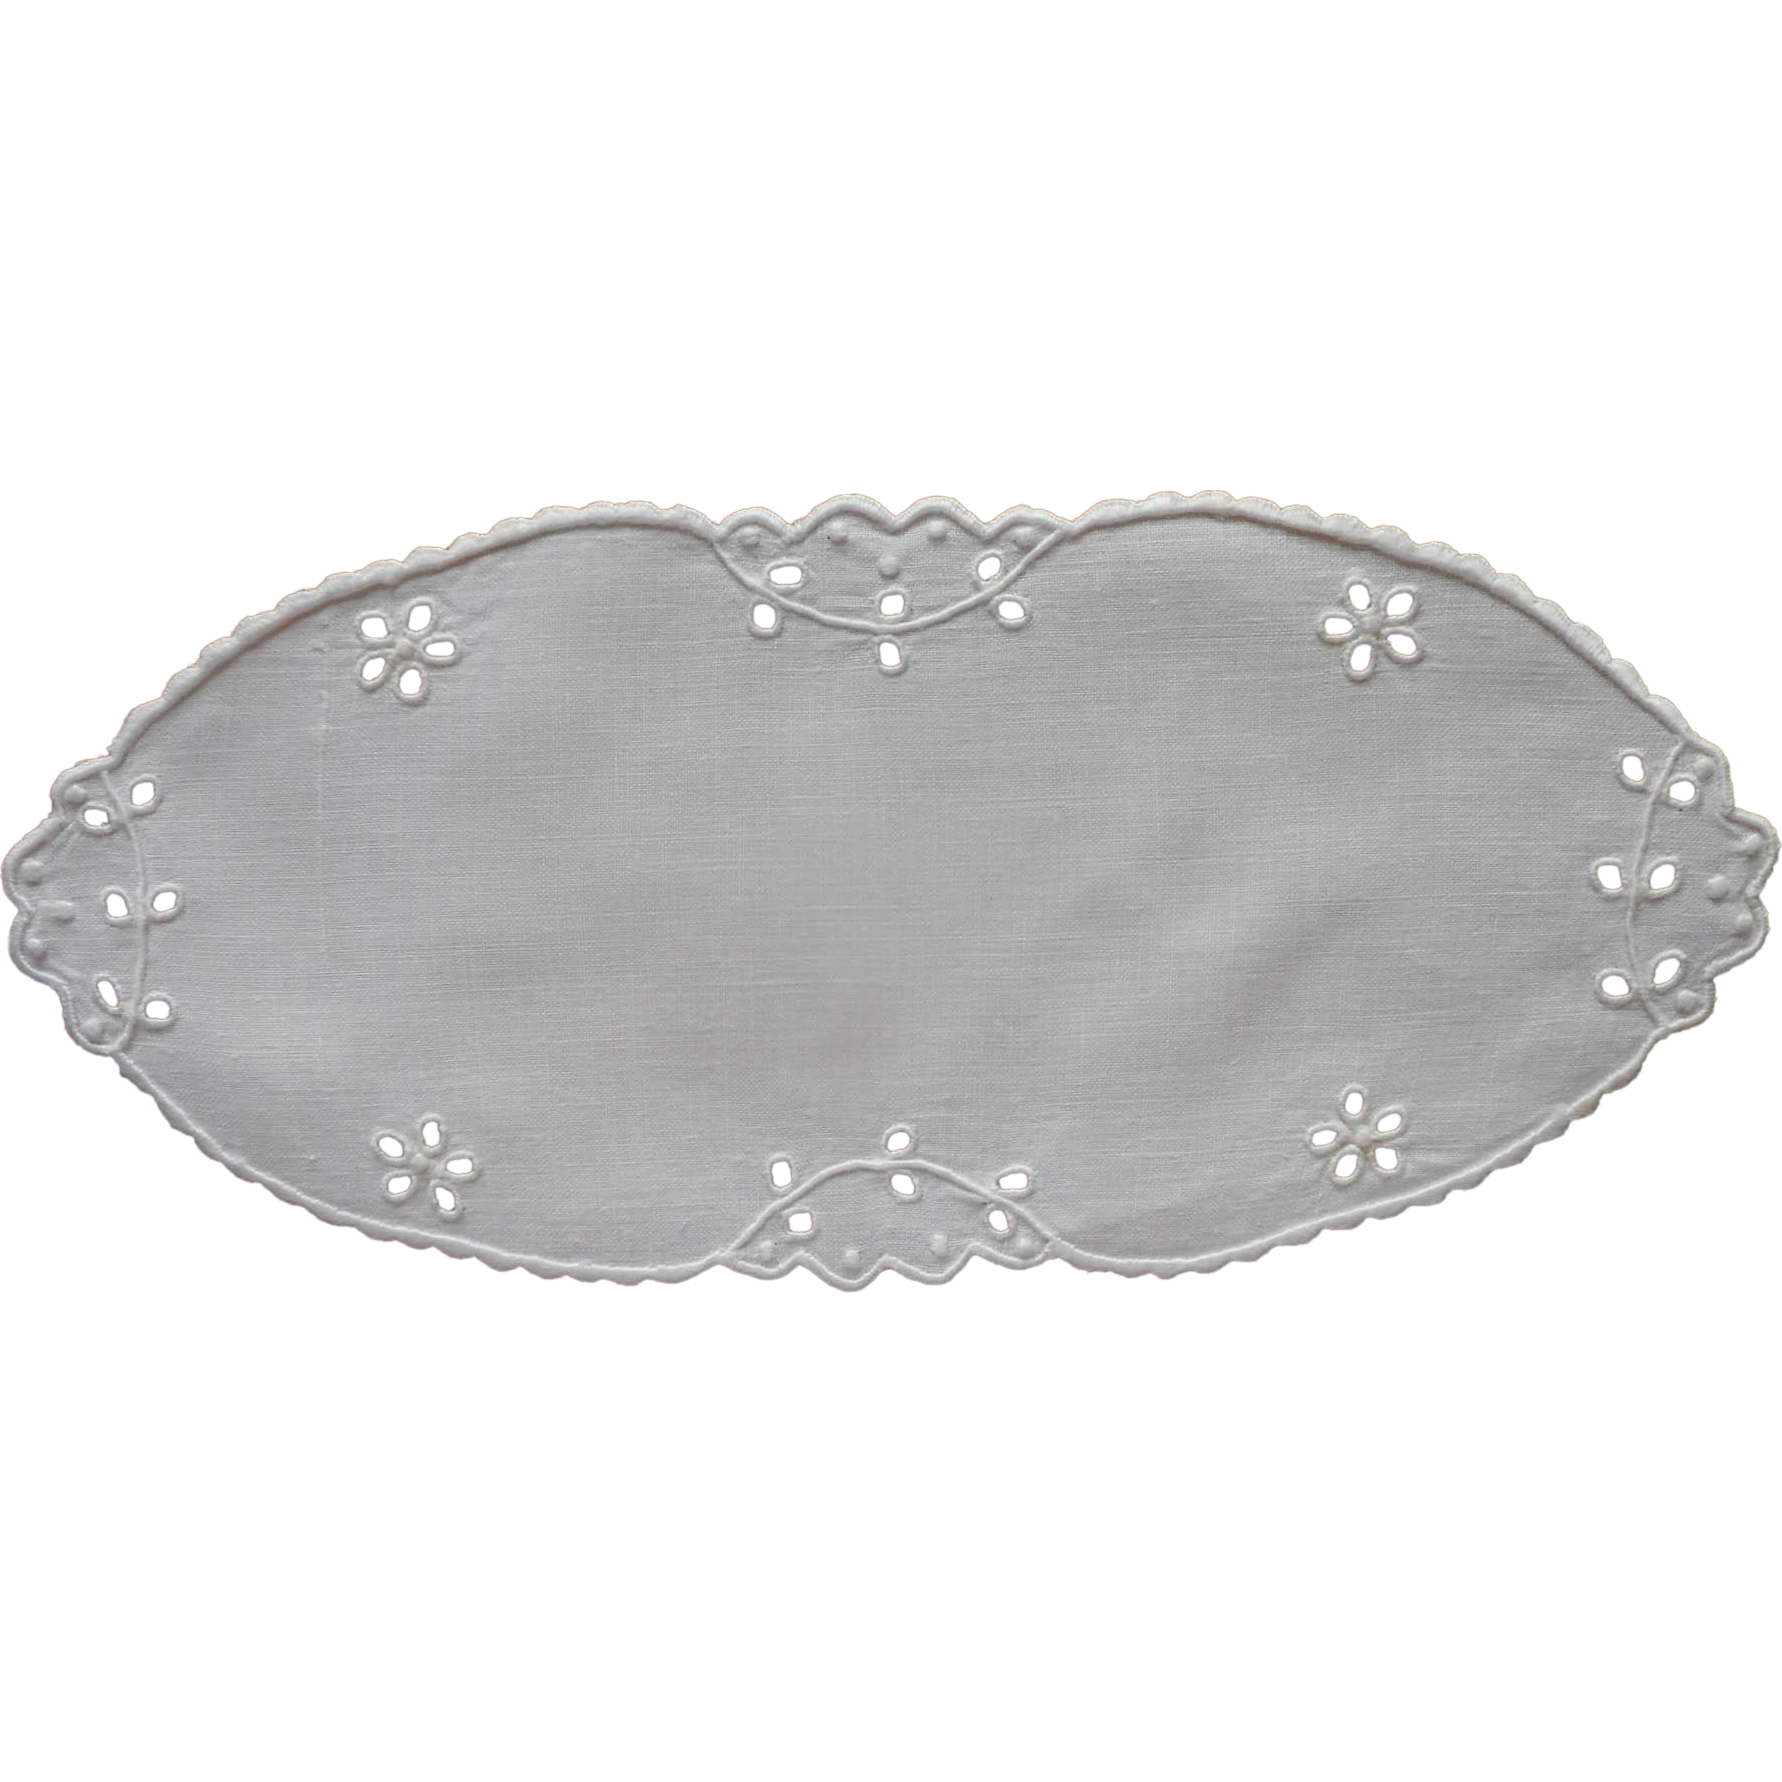 Bread Tray Doily Vintagee Linen Cutwork Hand Embroidery